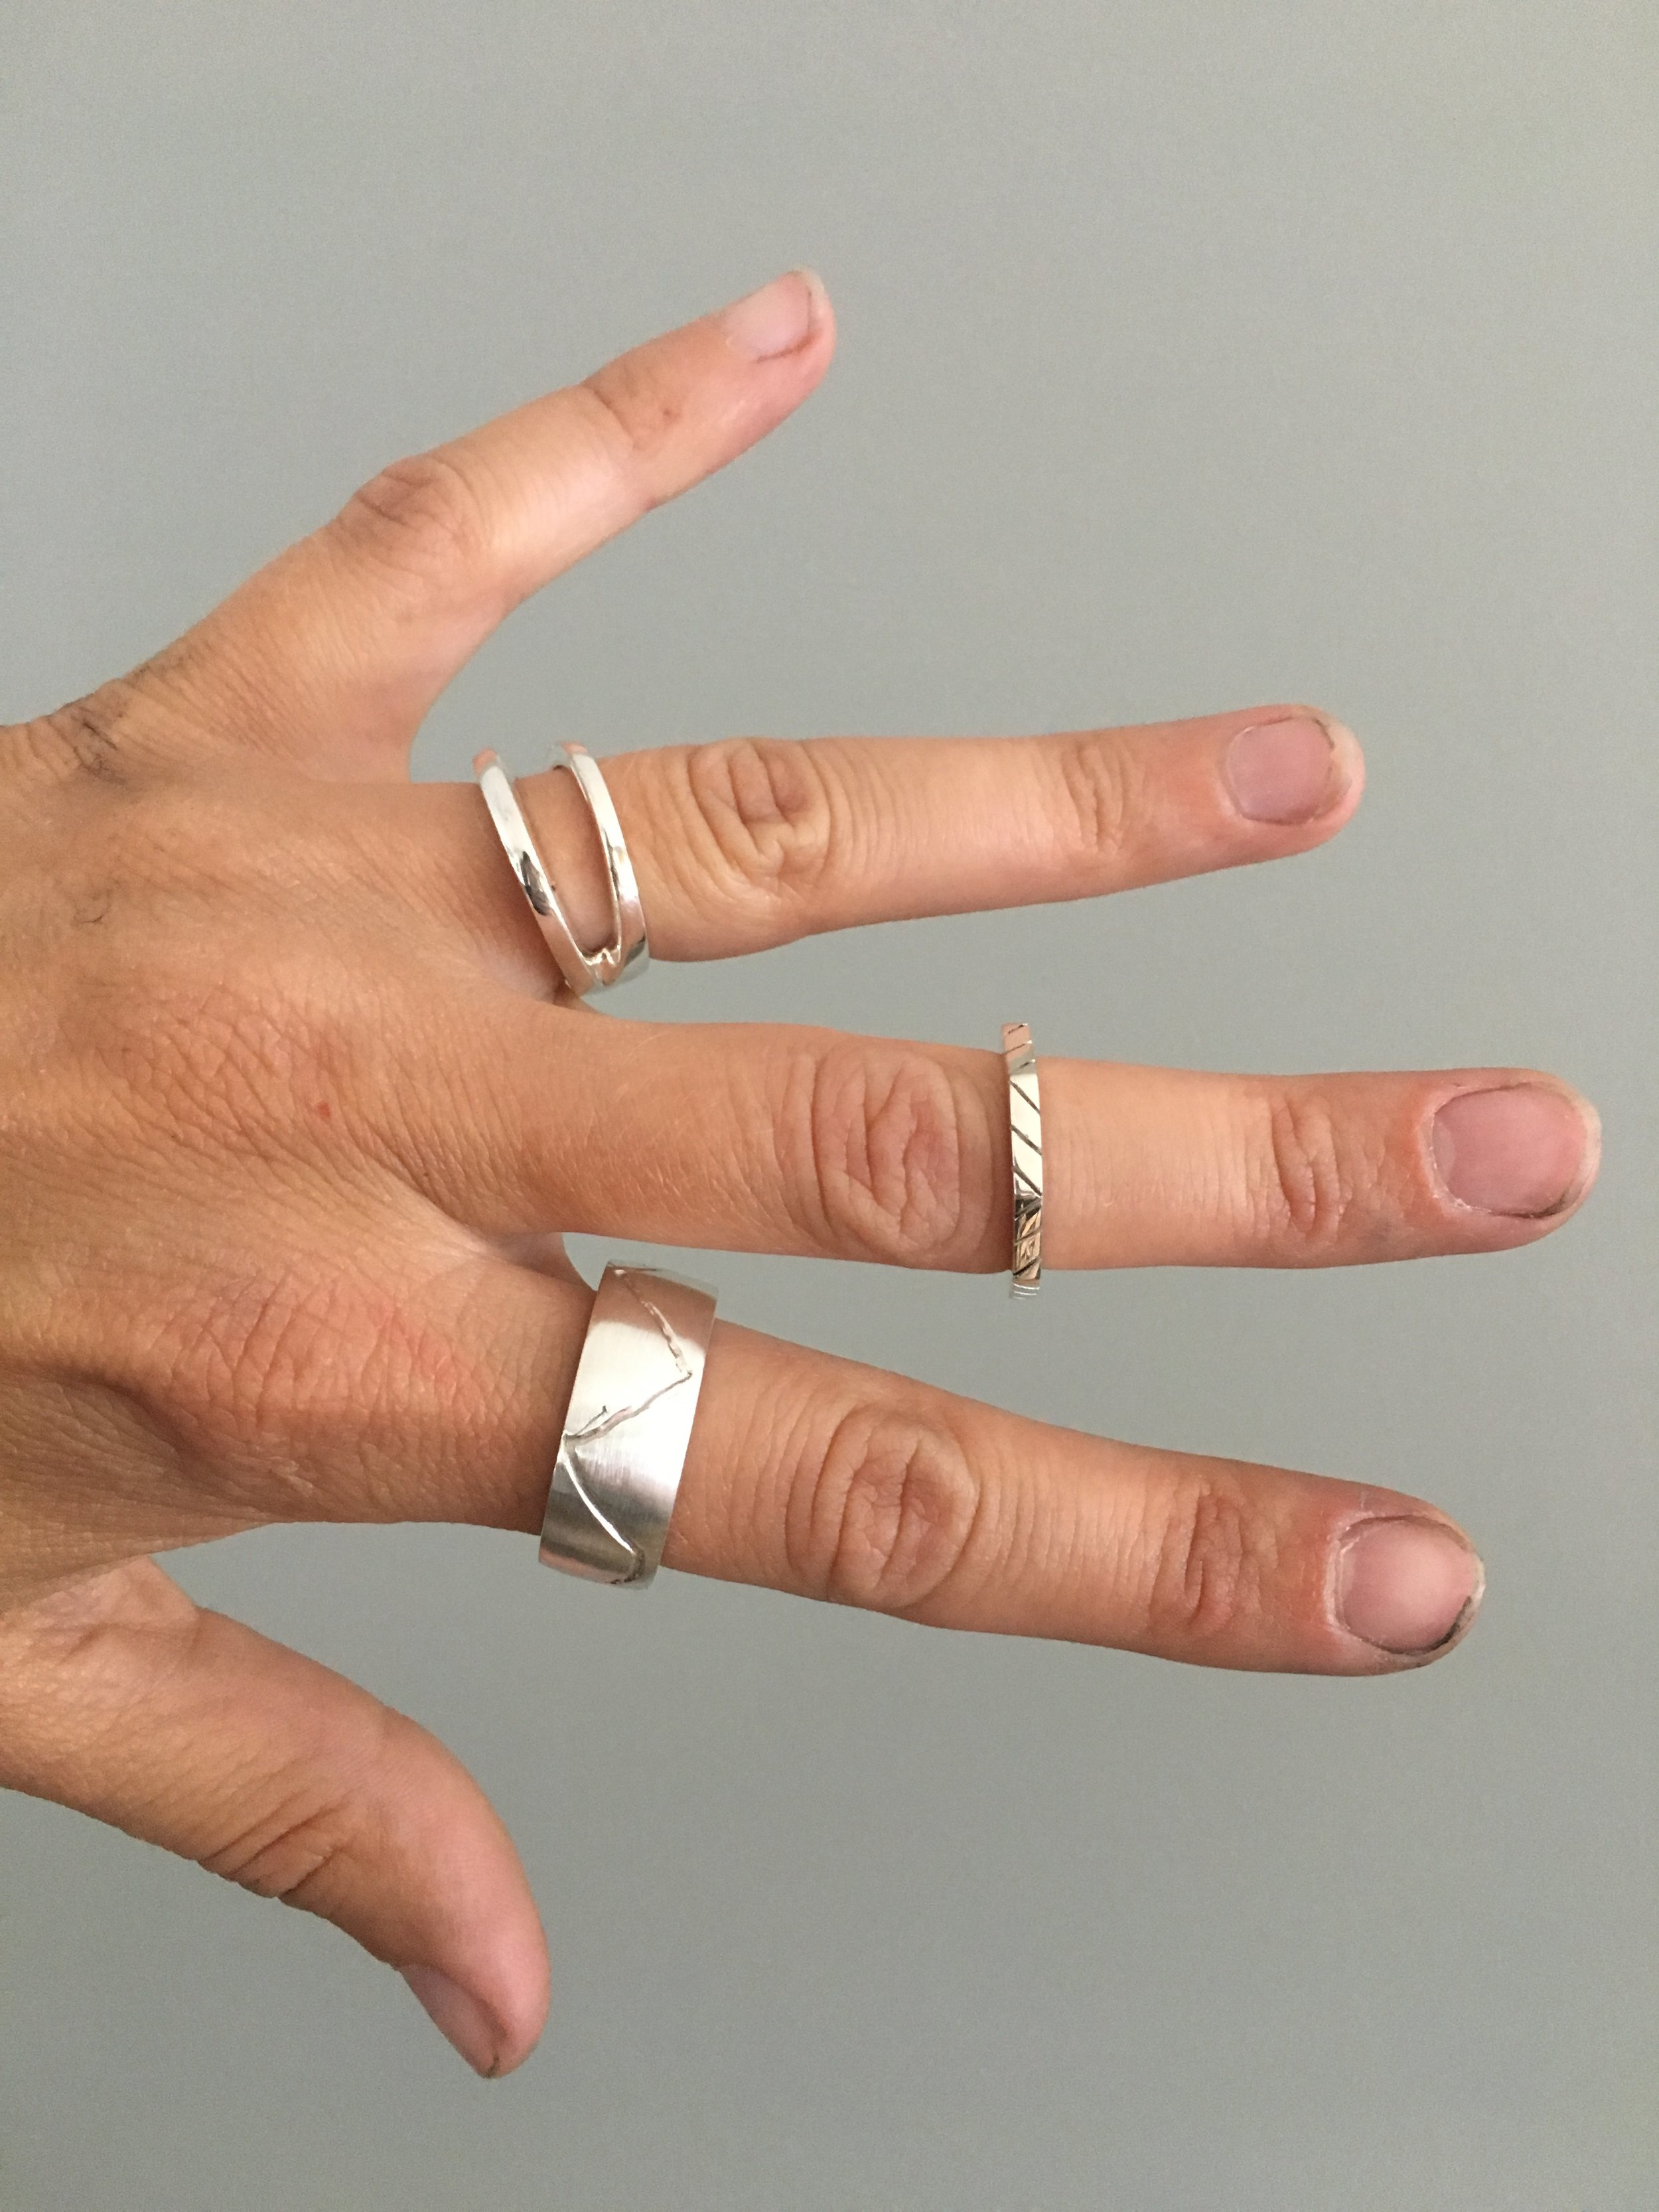 The final product of 3 custom sterling silver rings.